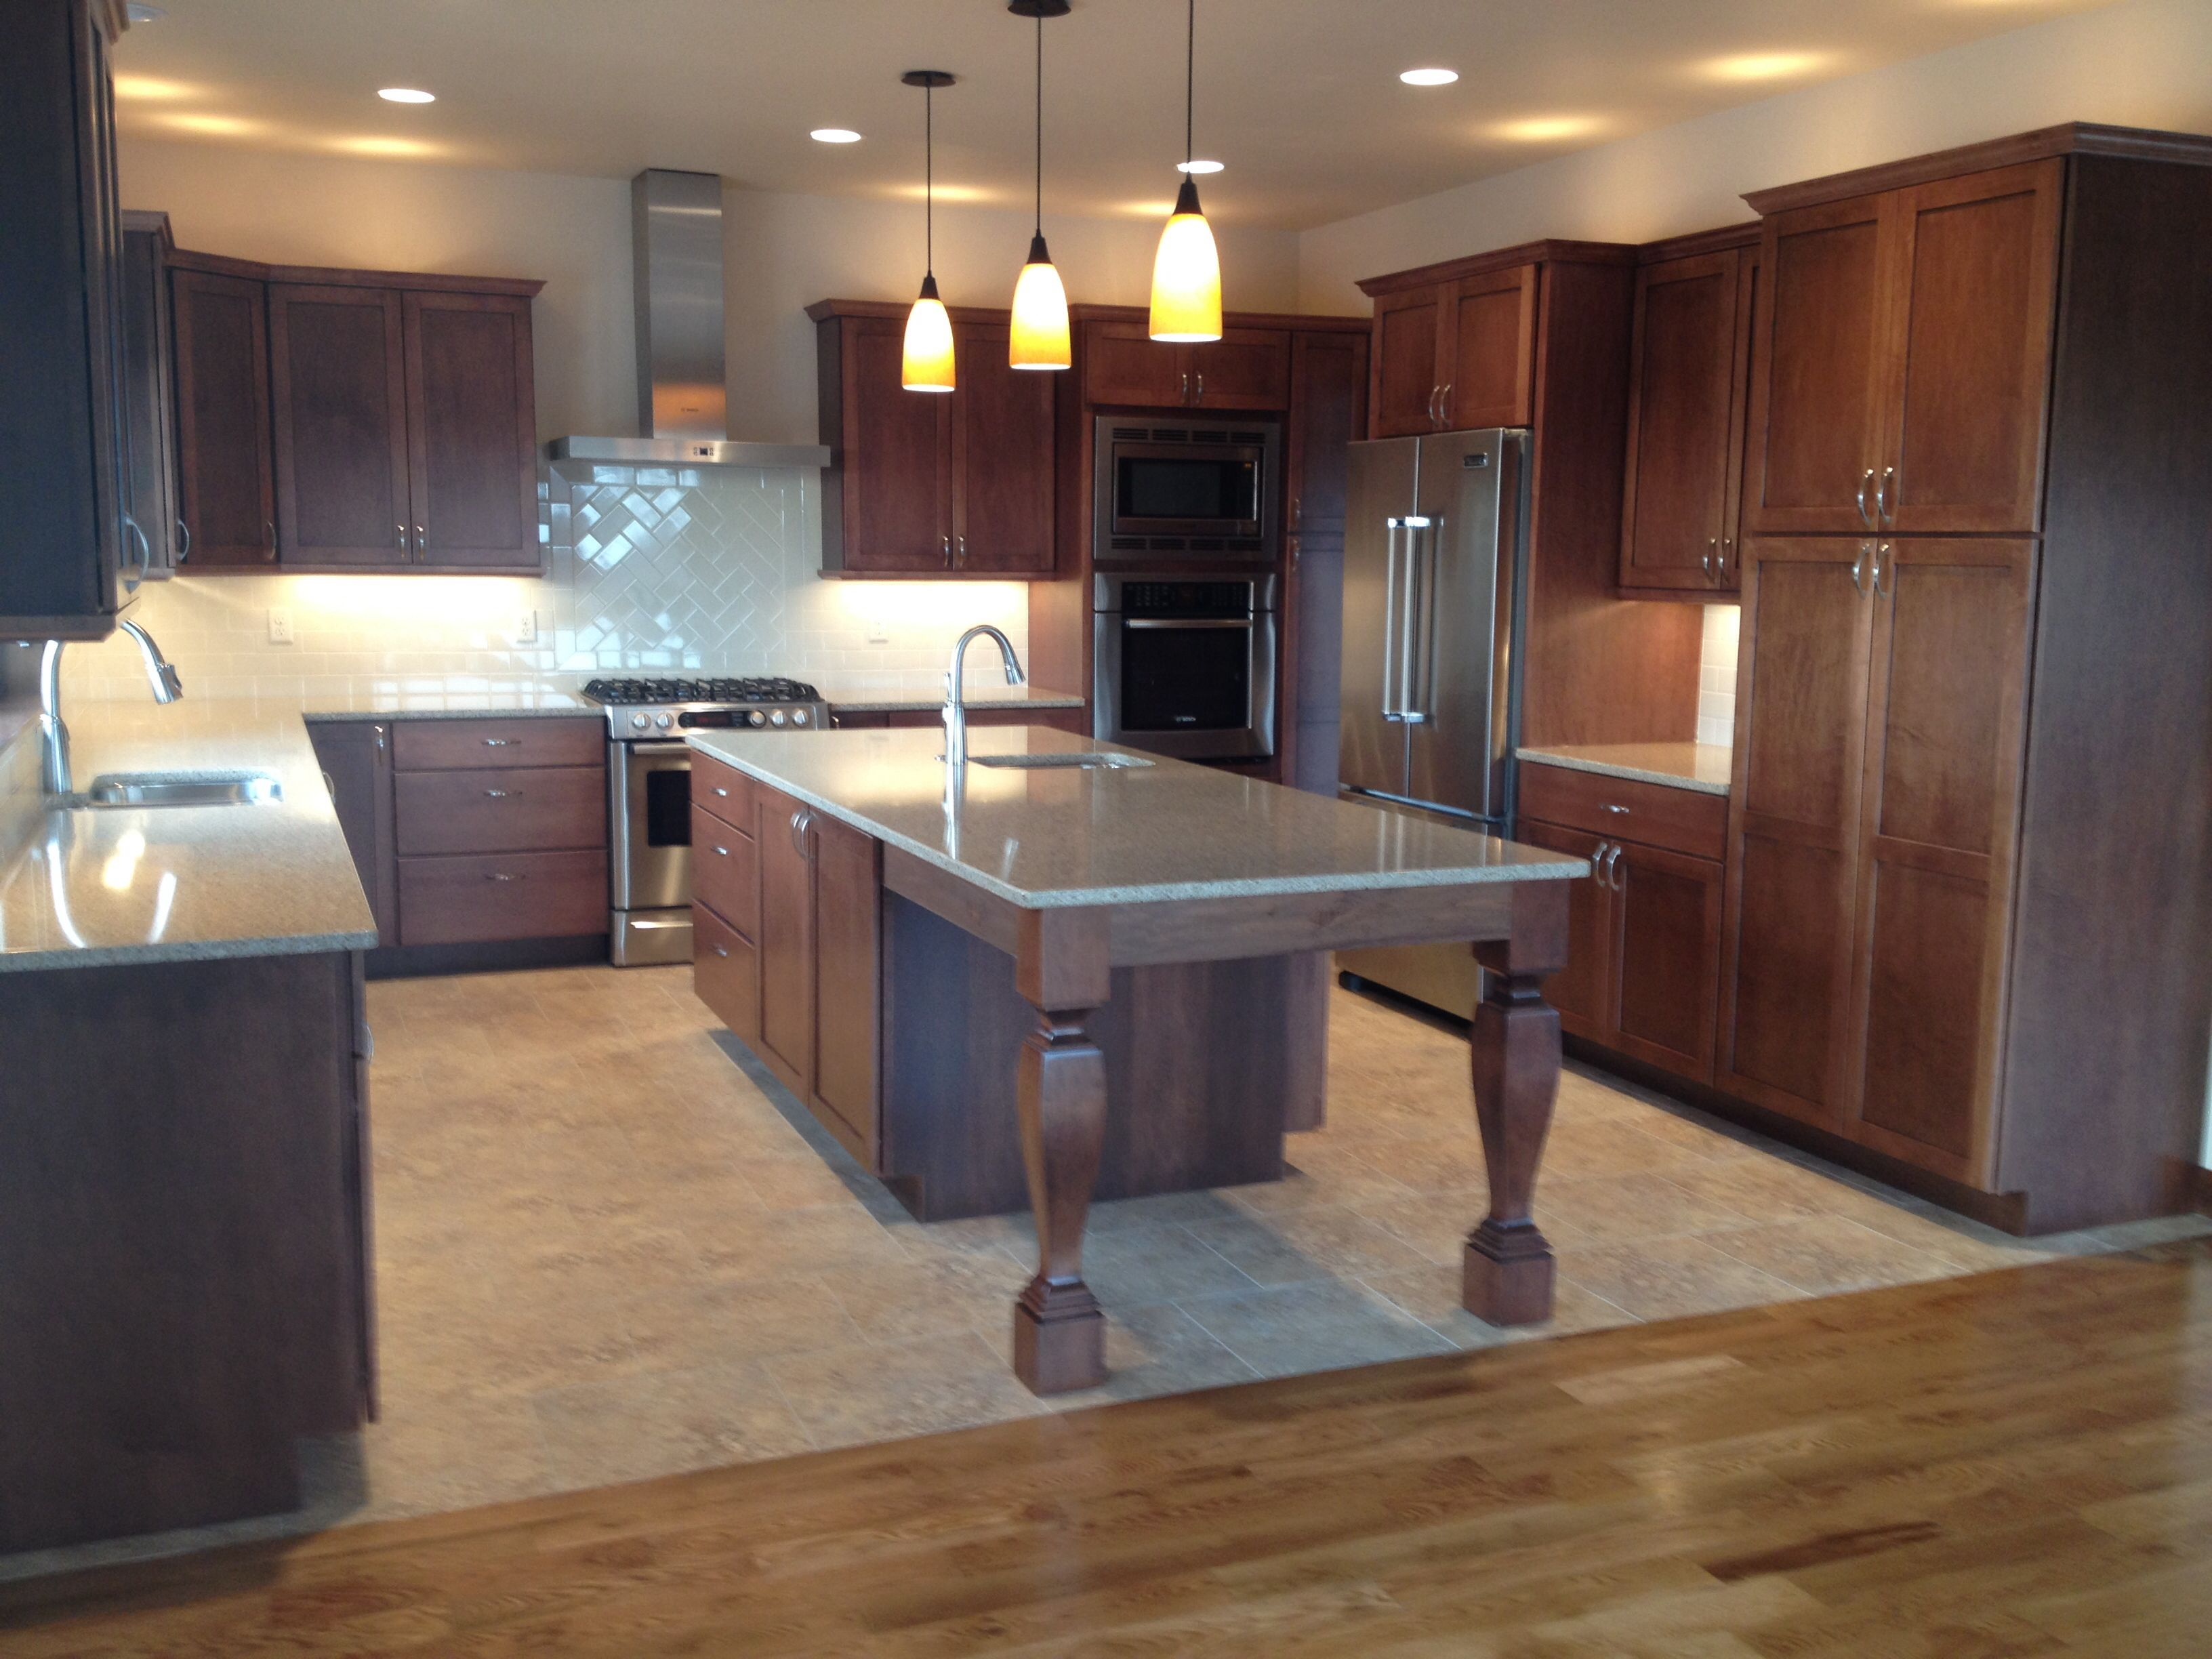 Grouted luxury vinyl tile flooring in kitchen meeting sand ...